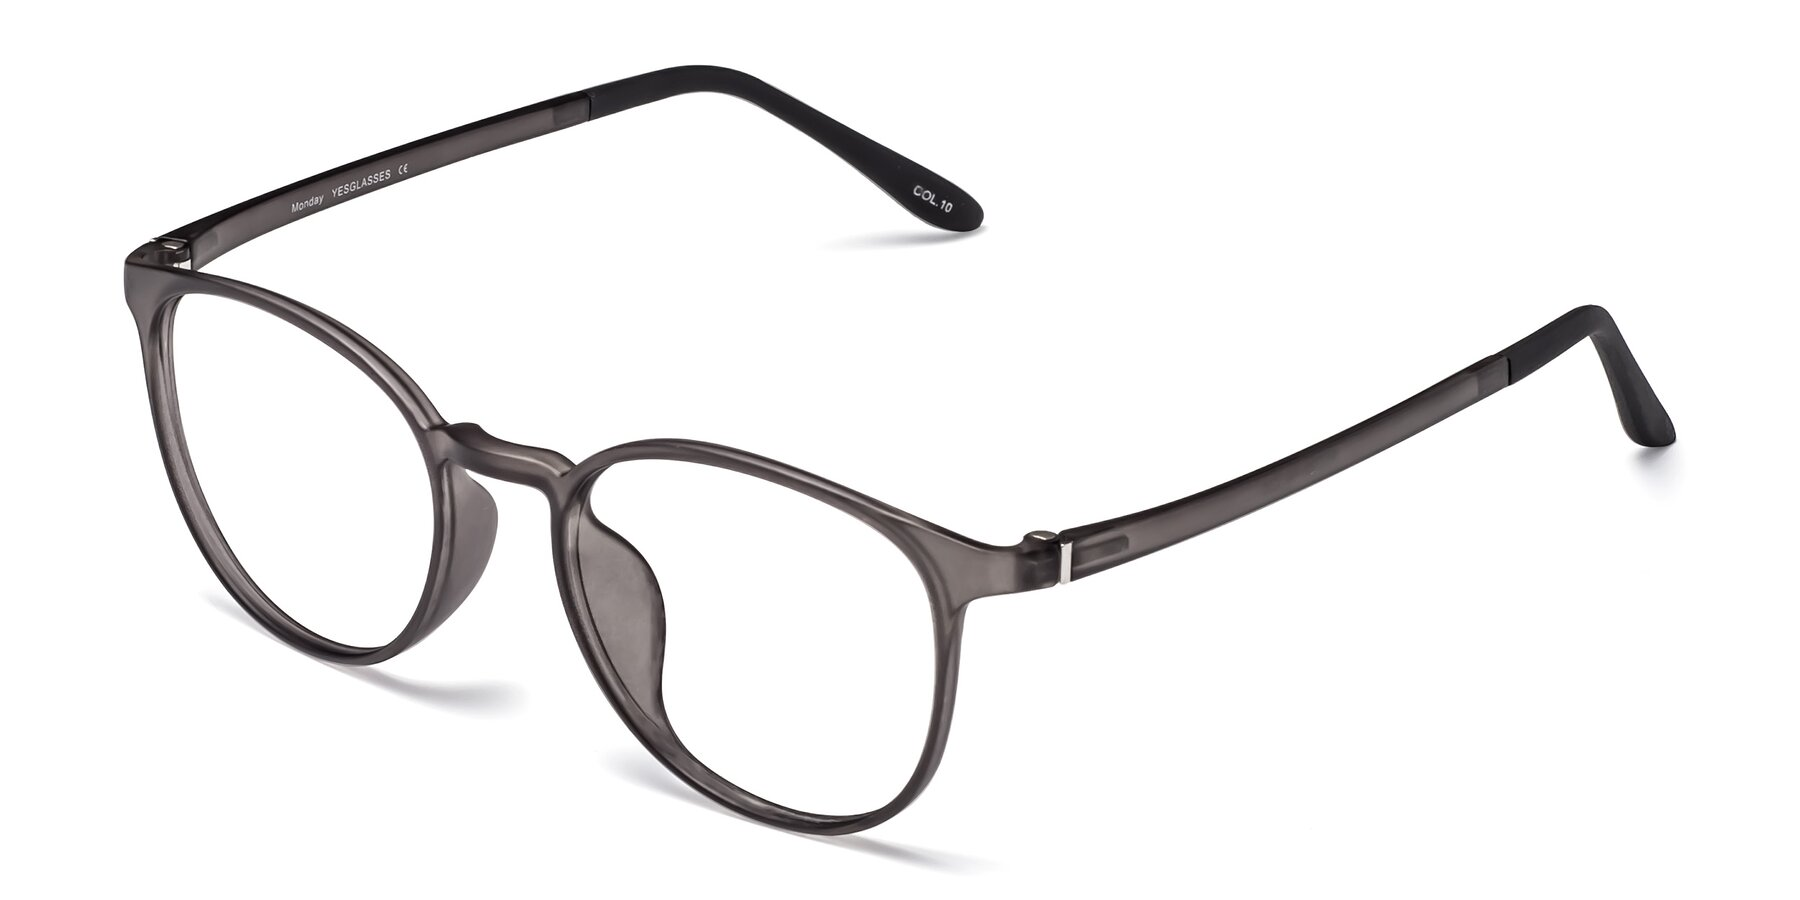 Angle of Monday in Translucent Gray with Clear Blue Light Blocking Lenses